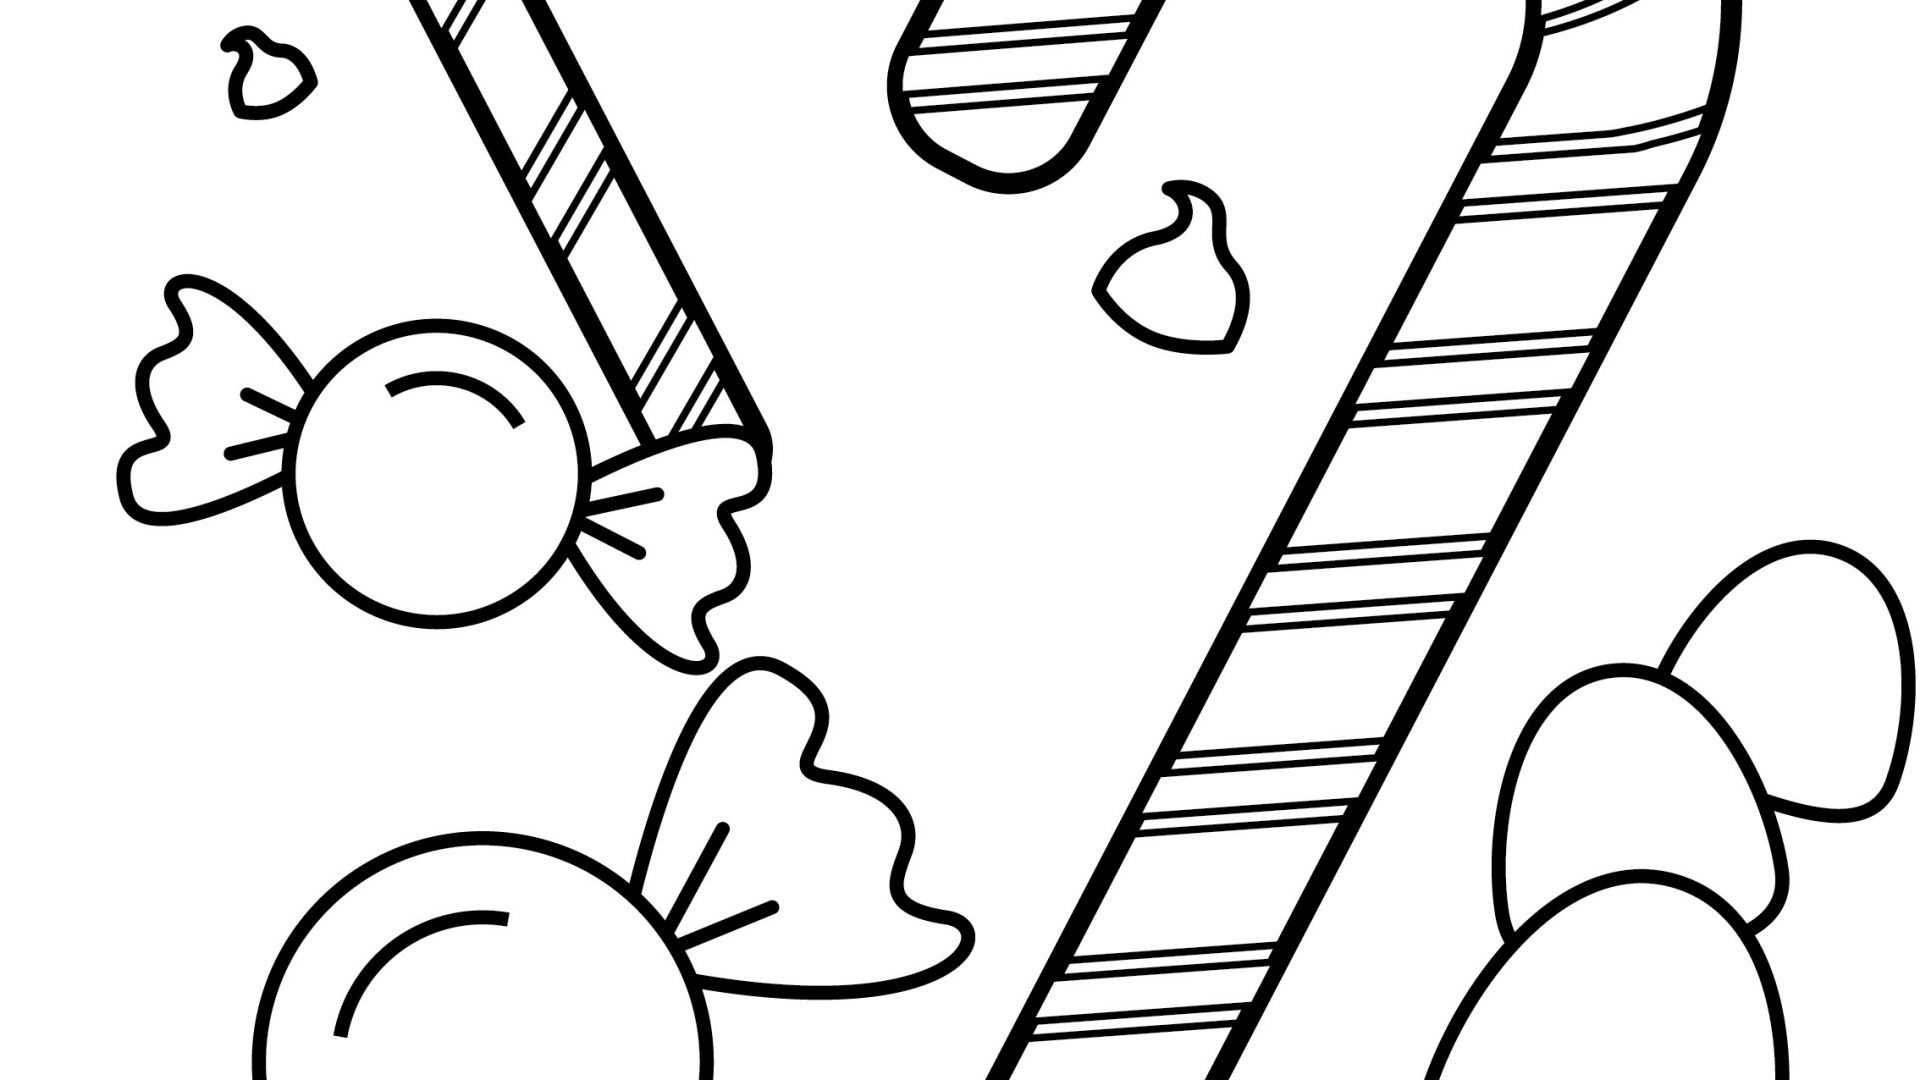 Coloring Pages To Print Print Pokemon Coloring Pages Free To Colouring For Adults Large